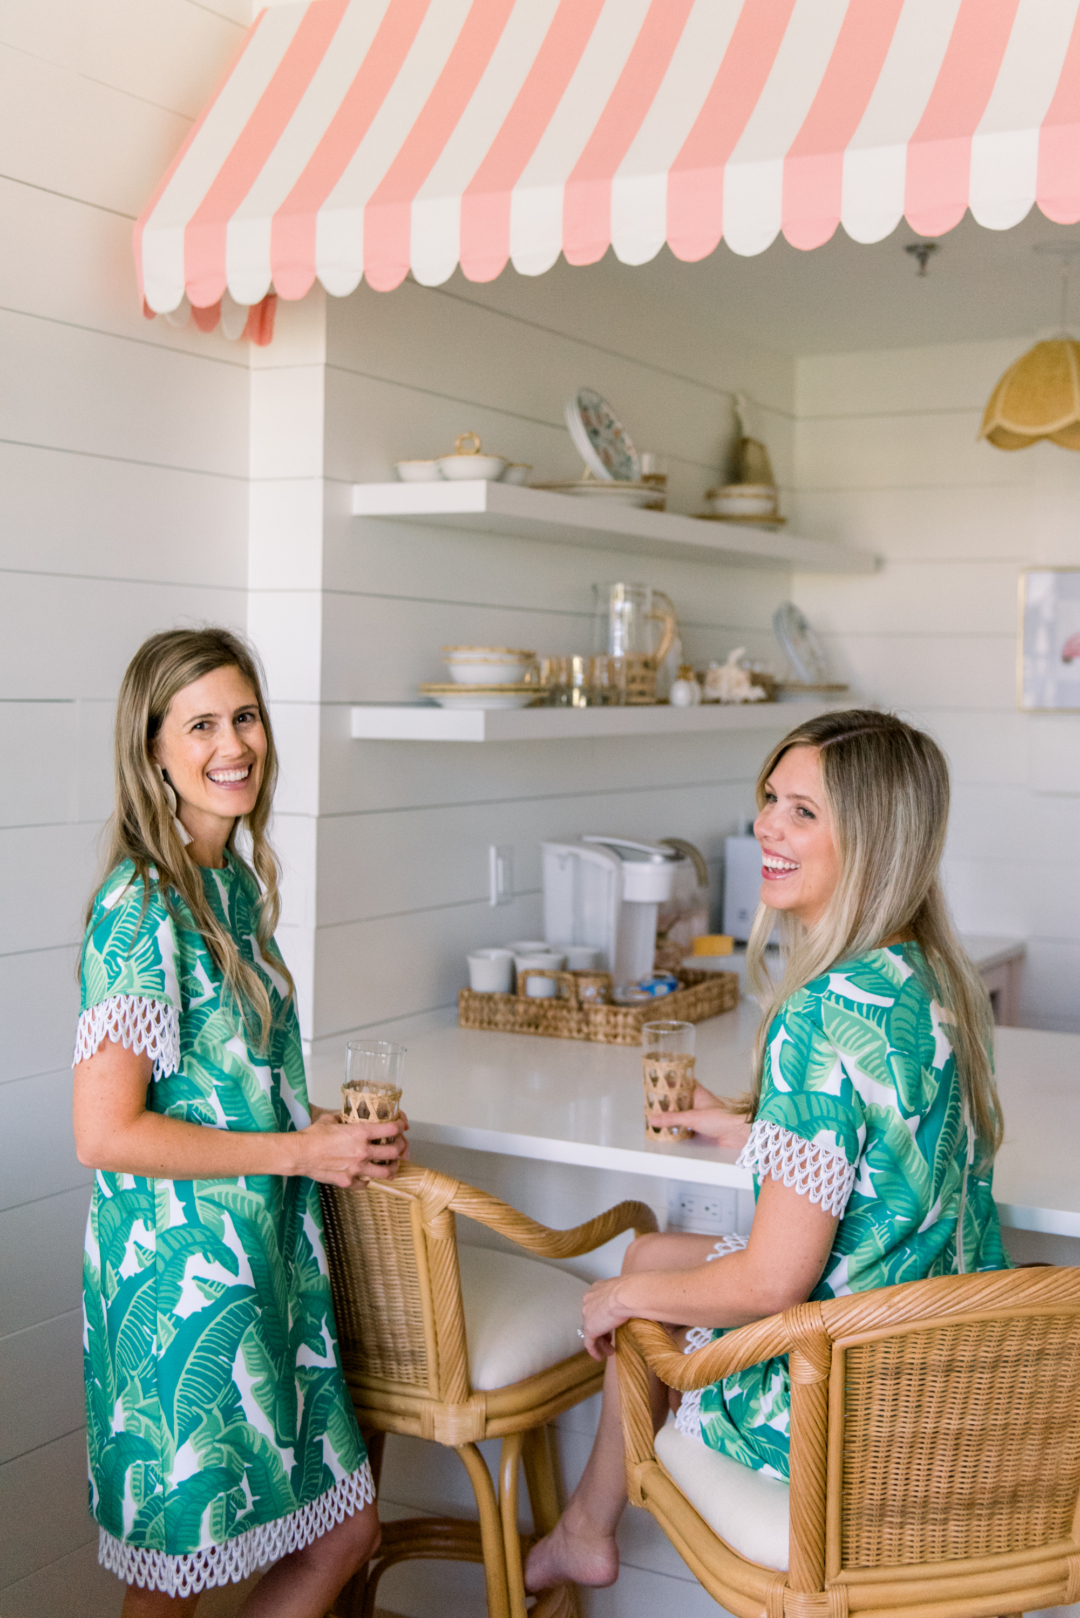 Fashion: Sail to Sable at Palm Beach Lately's Pineapple Pad